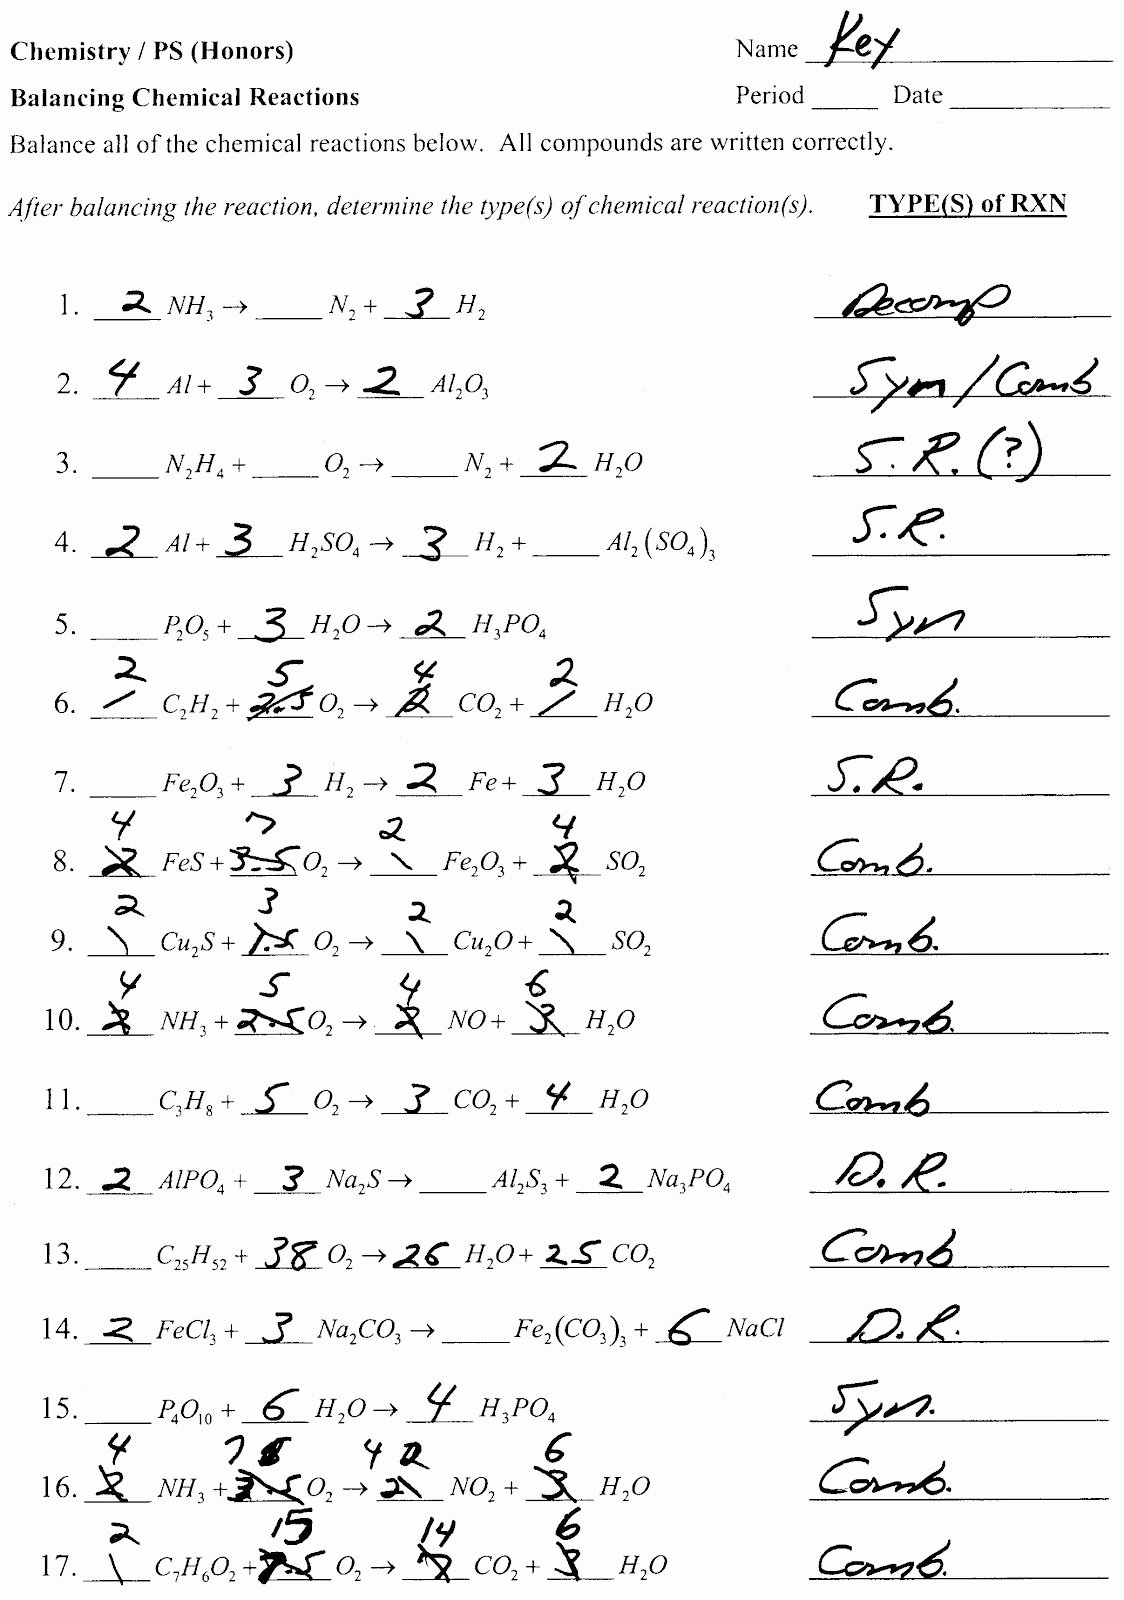 Chemical Reactions Worksheet Answers Beautiful Chemical Reactions Balancing Equations Worksheets